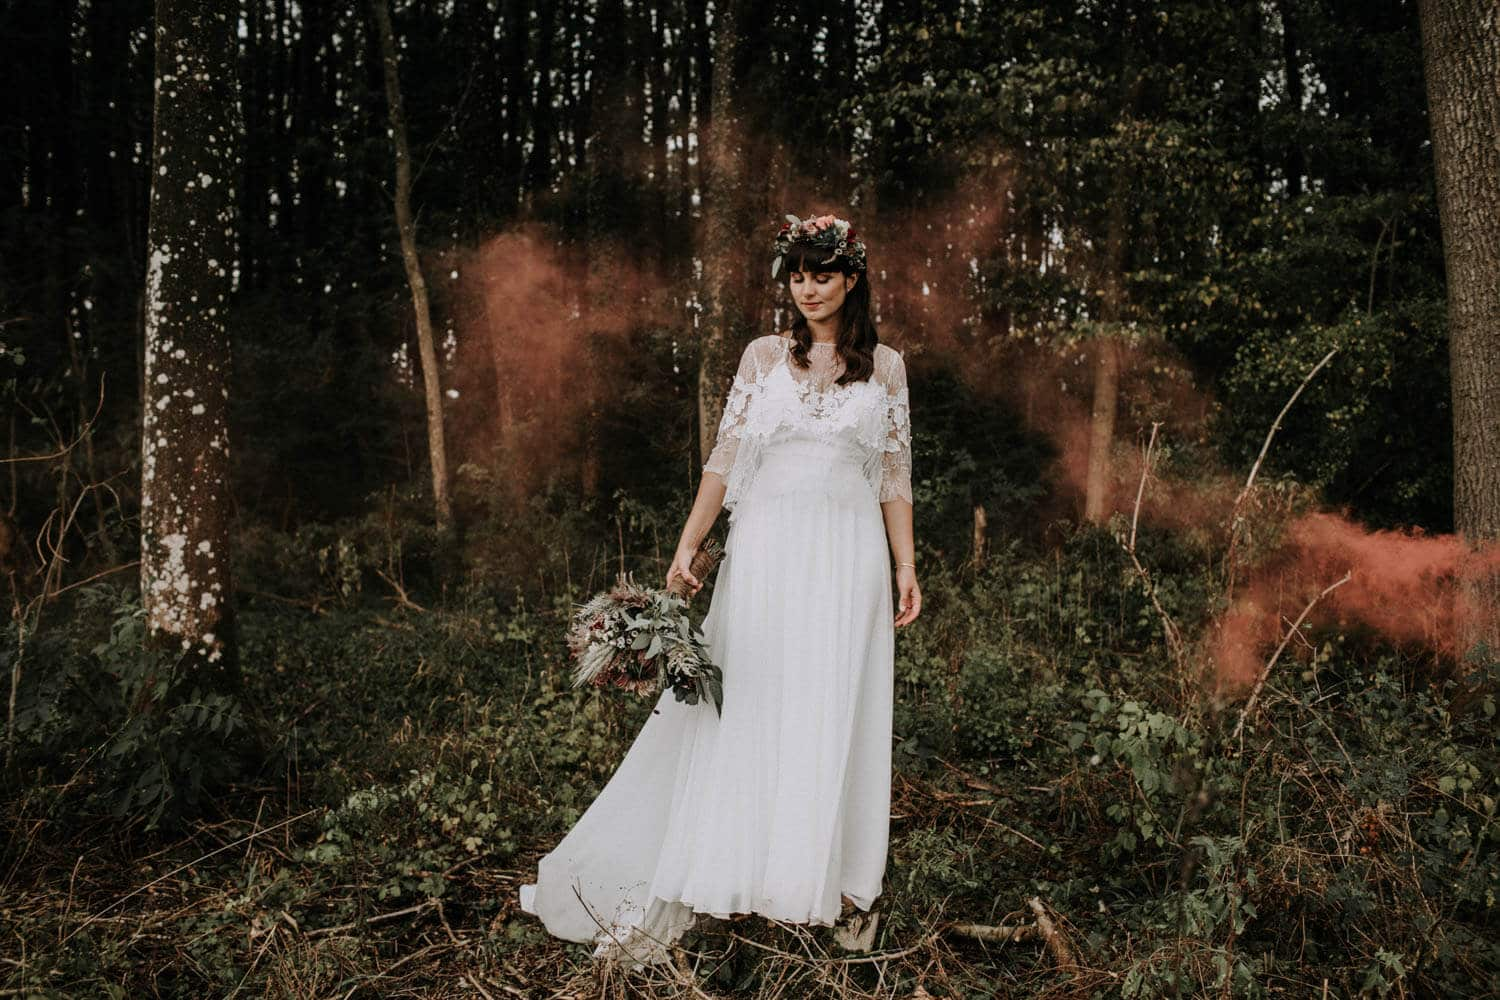 Amanda with her perfect wedding gown in the forest